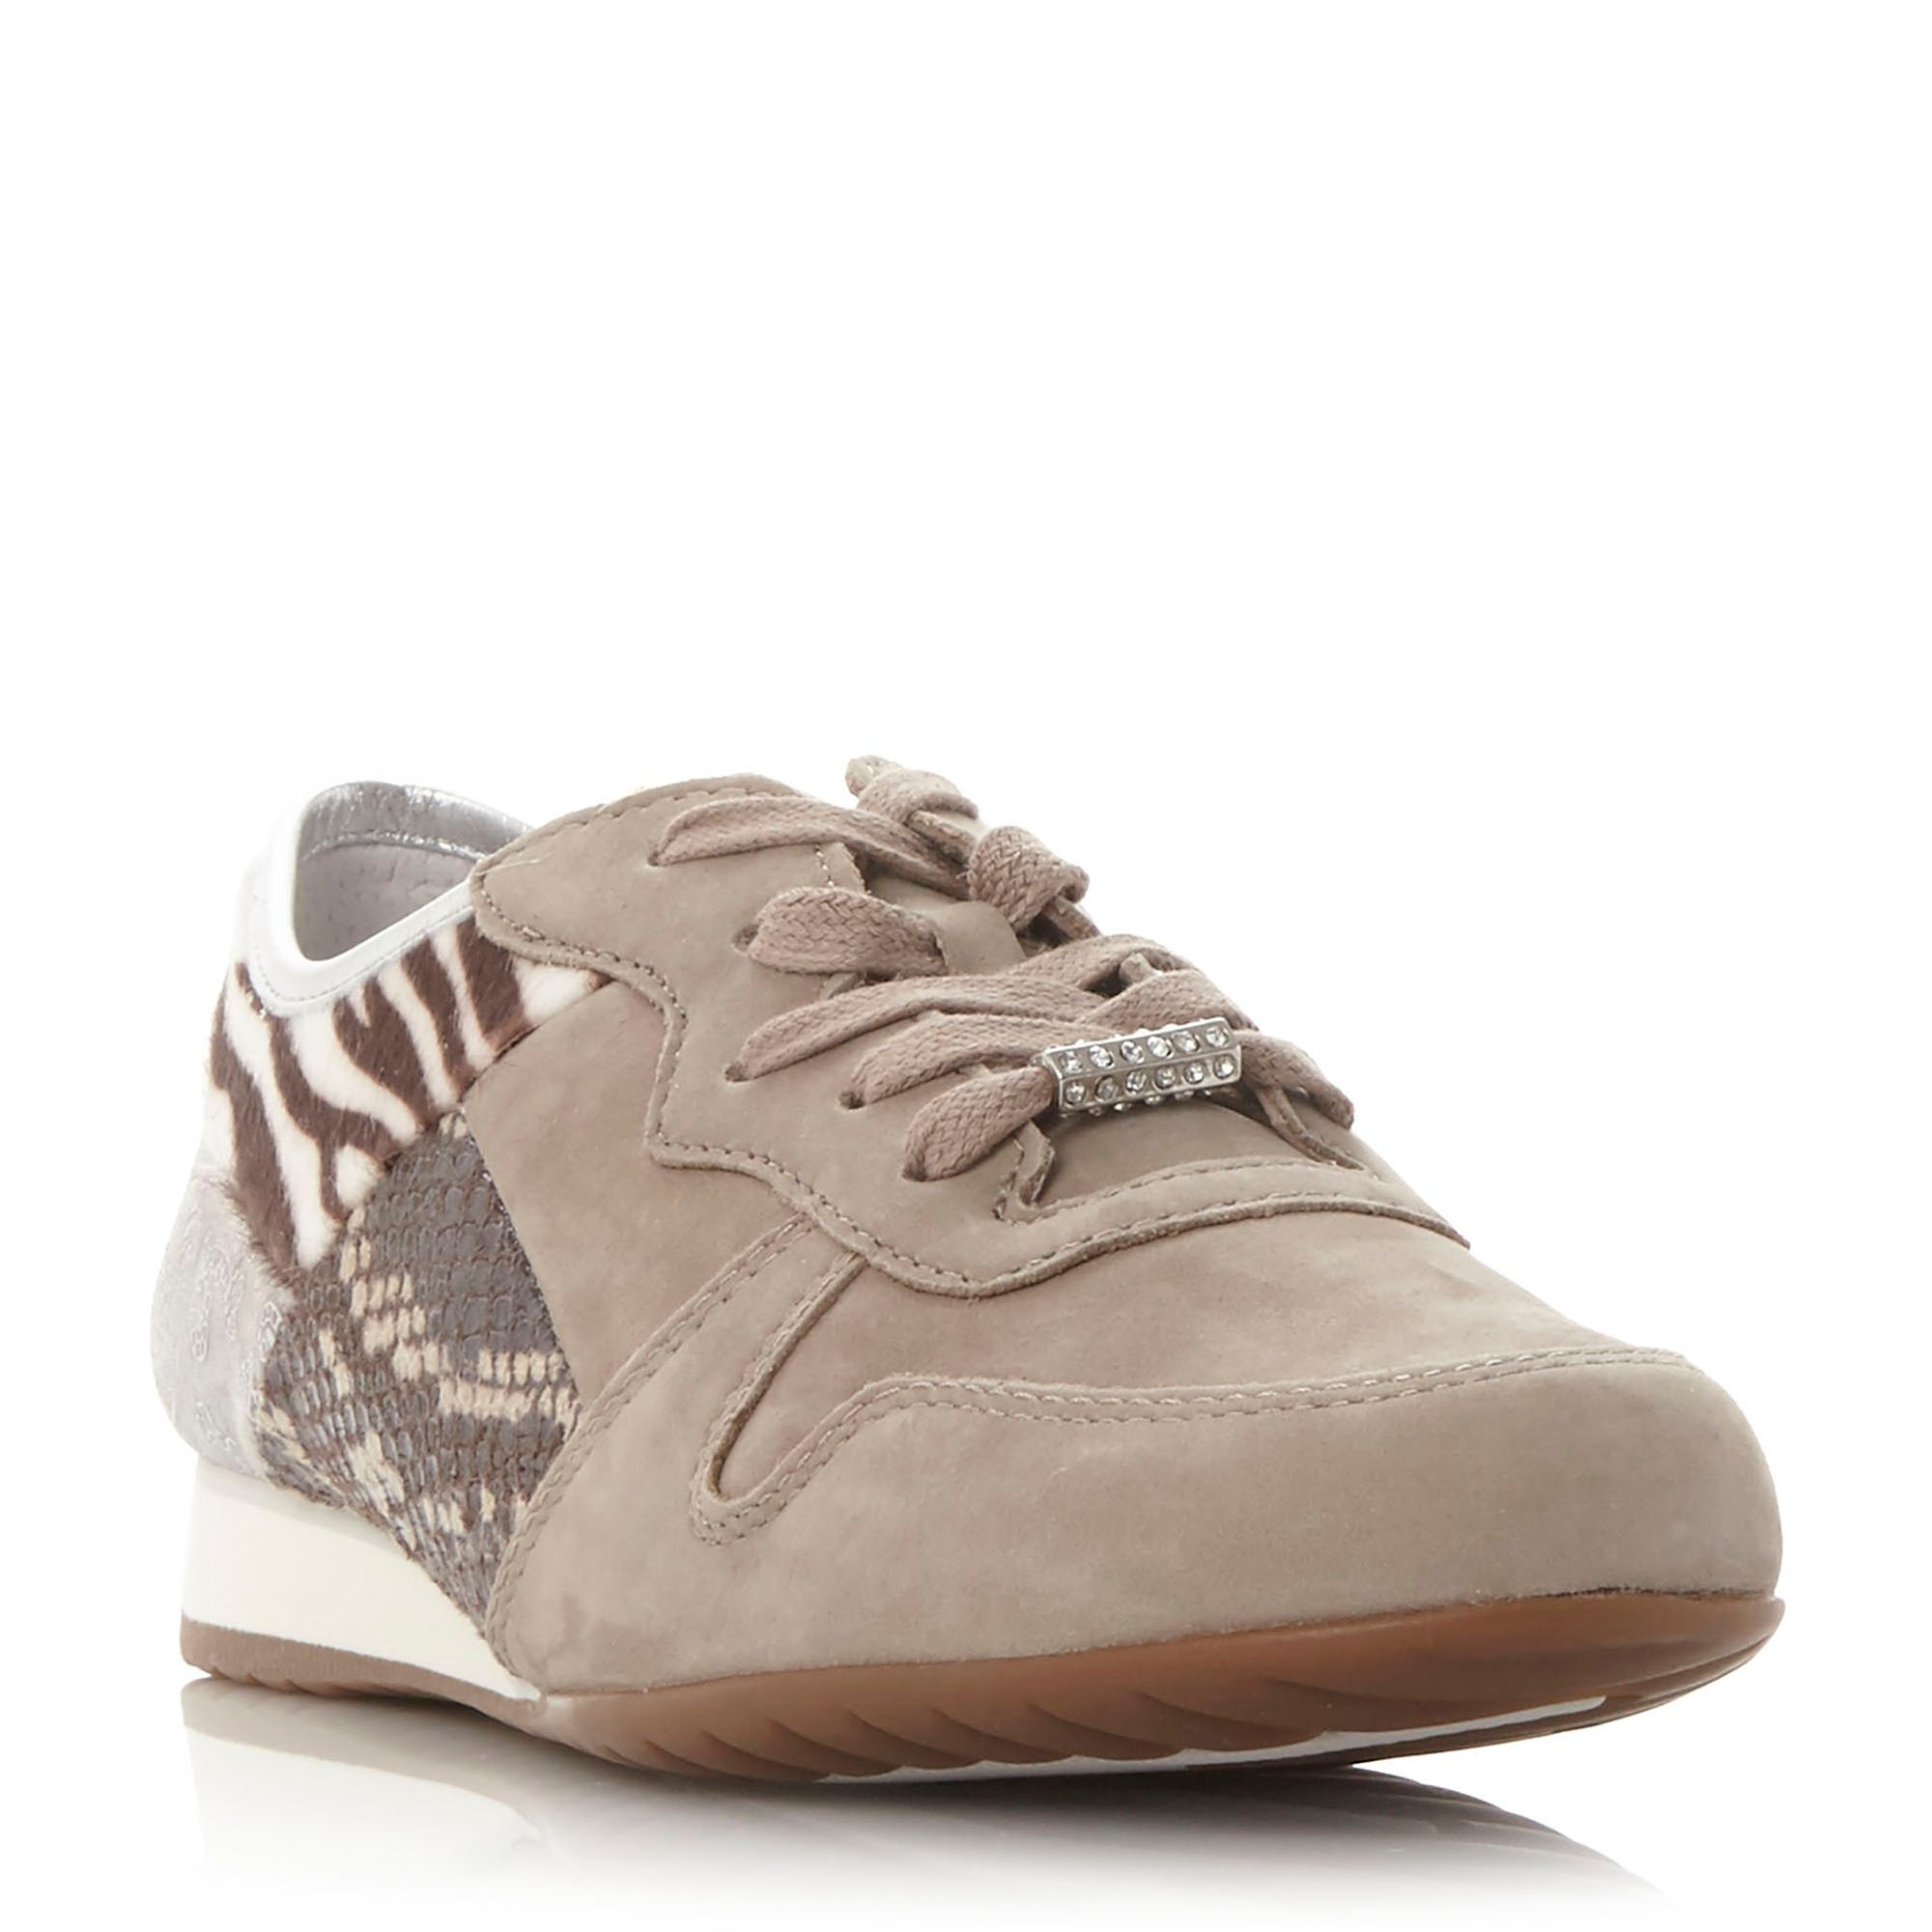 Gabor Haddaway multi fabric lace up shoes, White